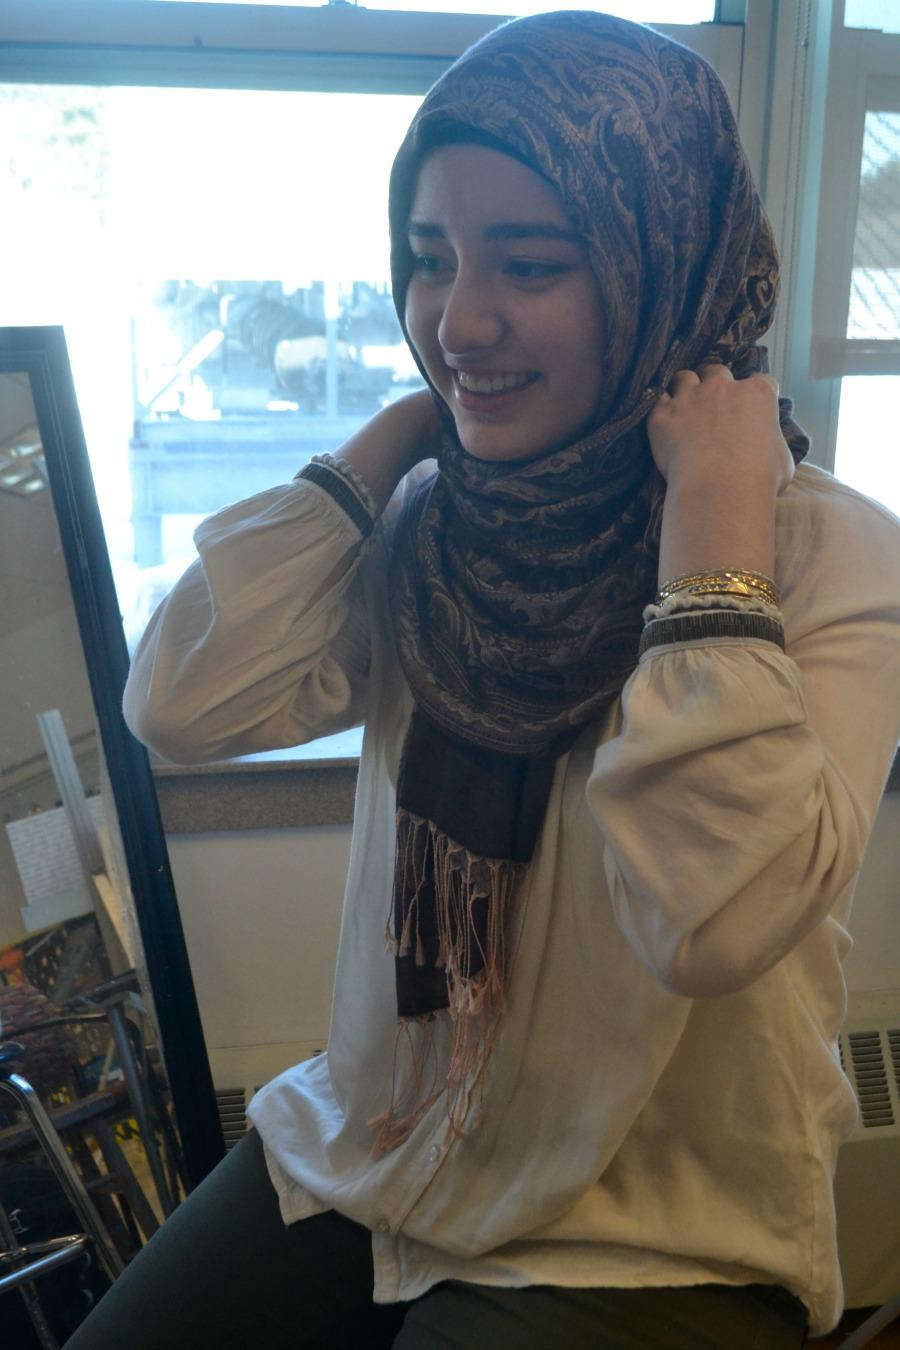 Senior Nargis Rajai wears her hijab as part of her Islamic culture.